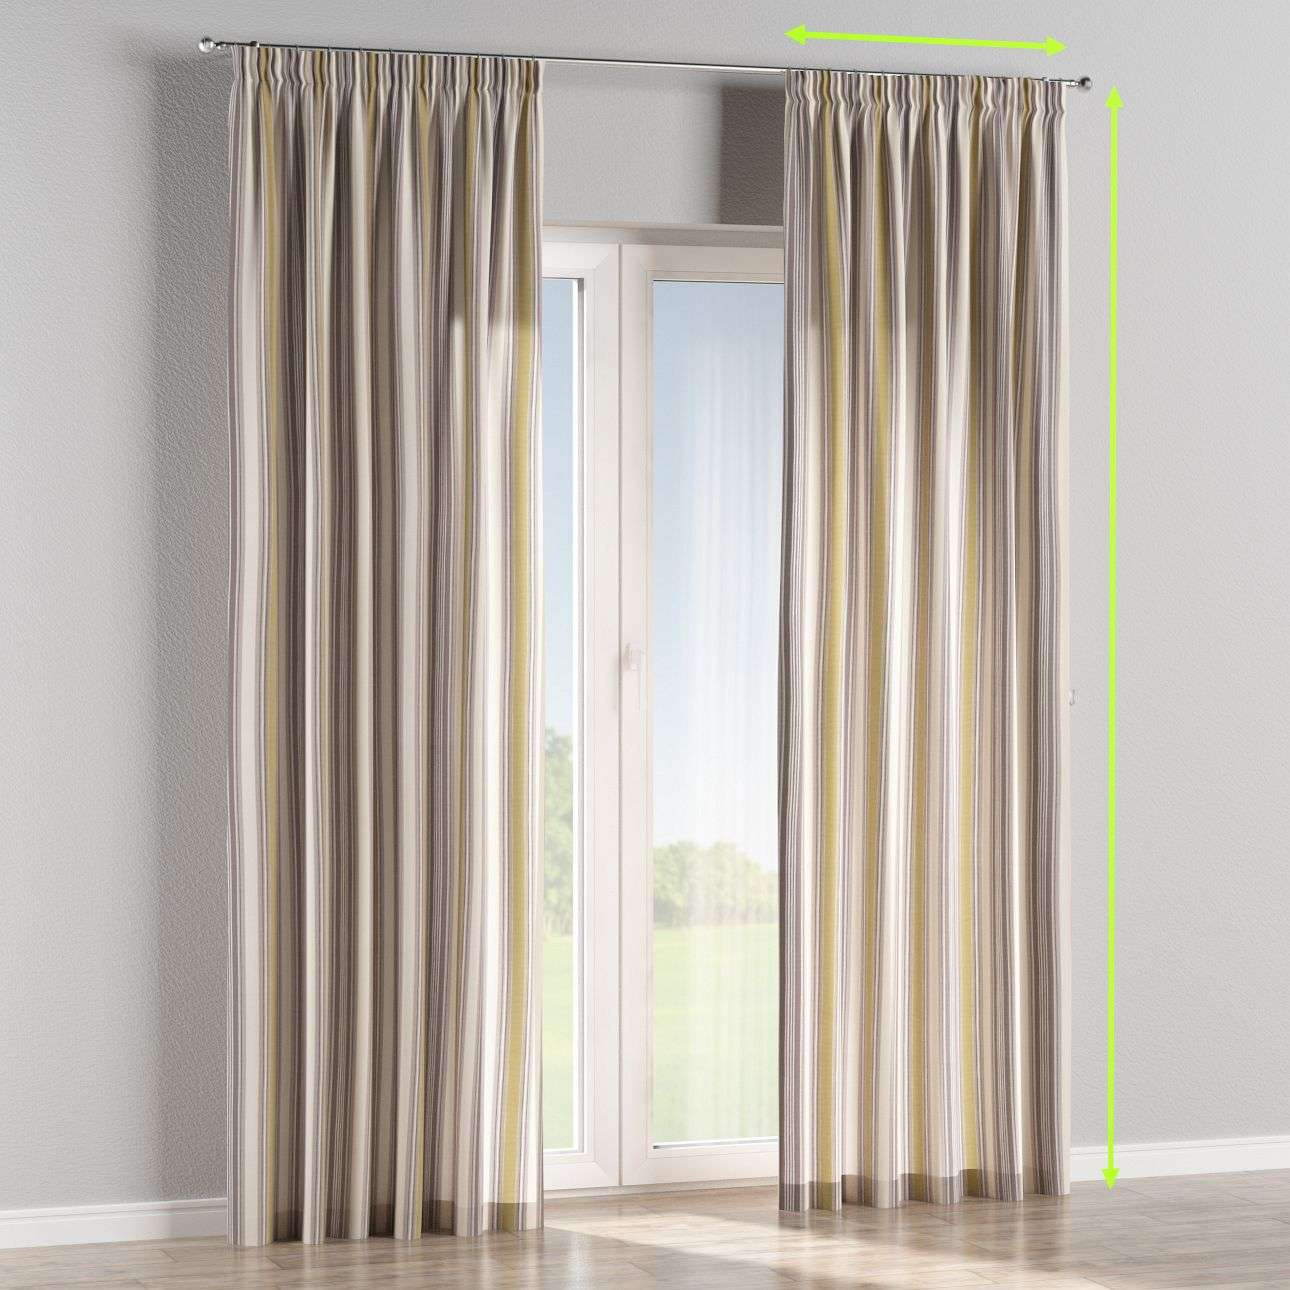 Pencil pleat curtains in collection Londres, fabric: 122-06